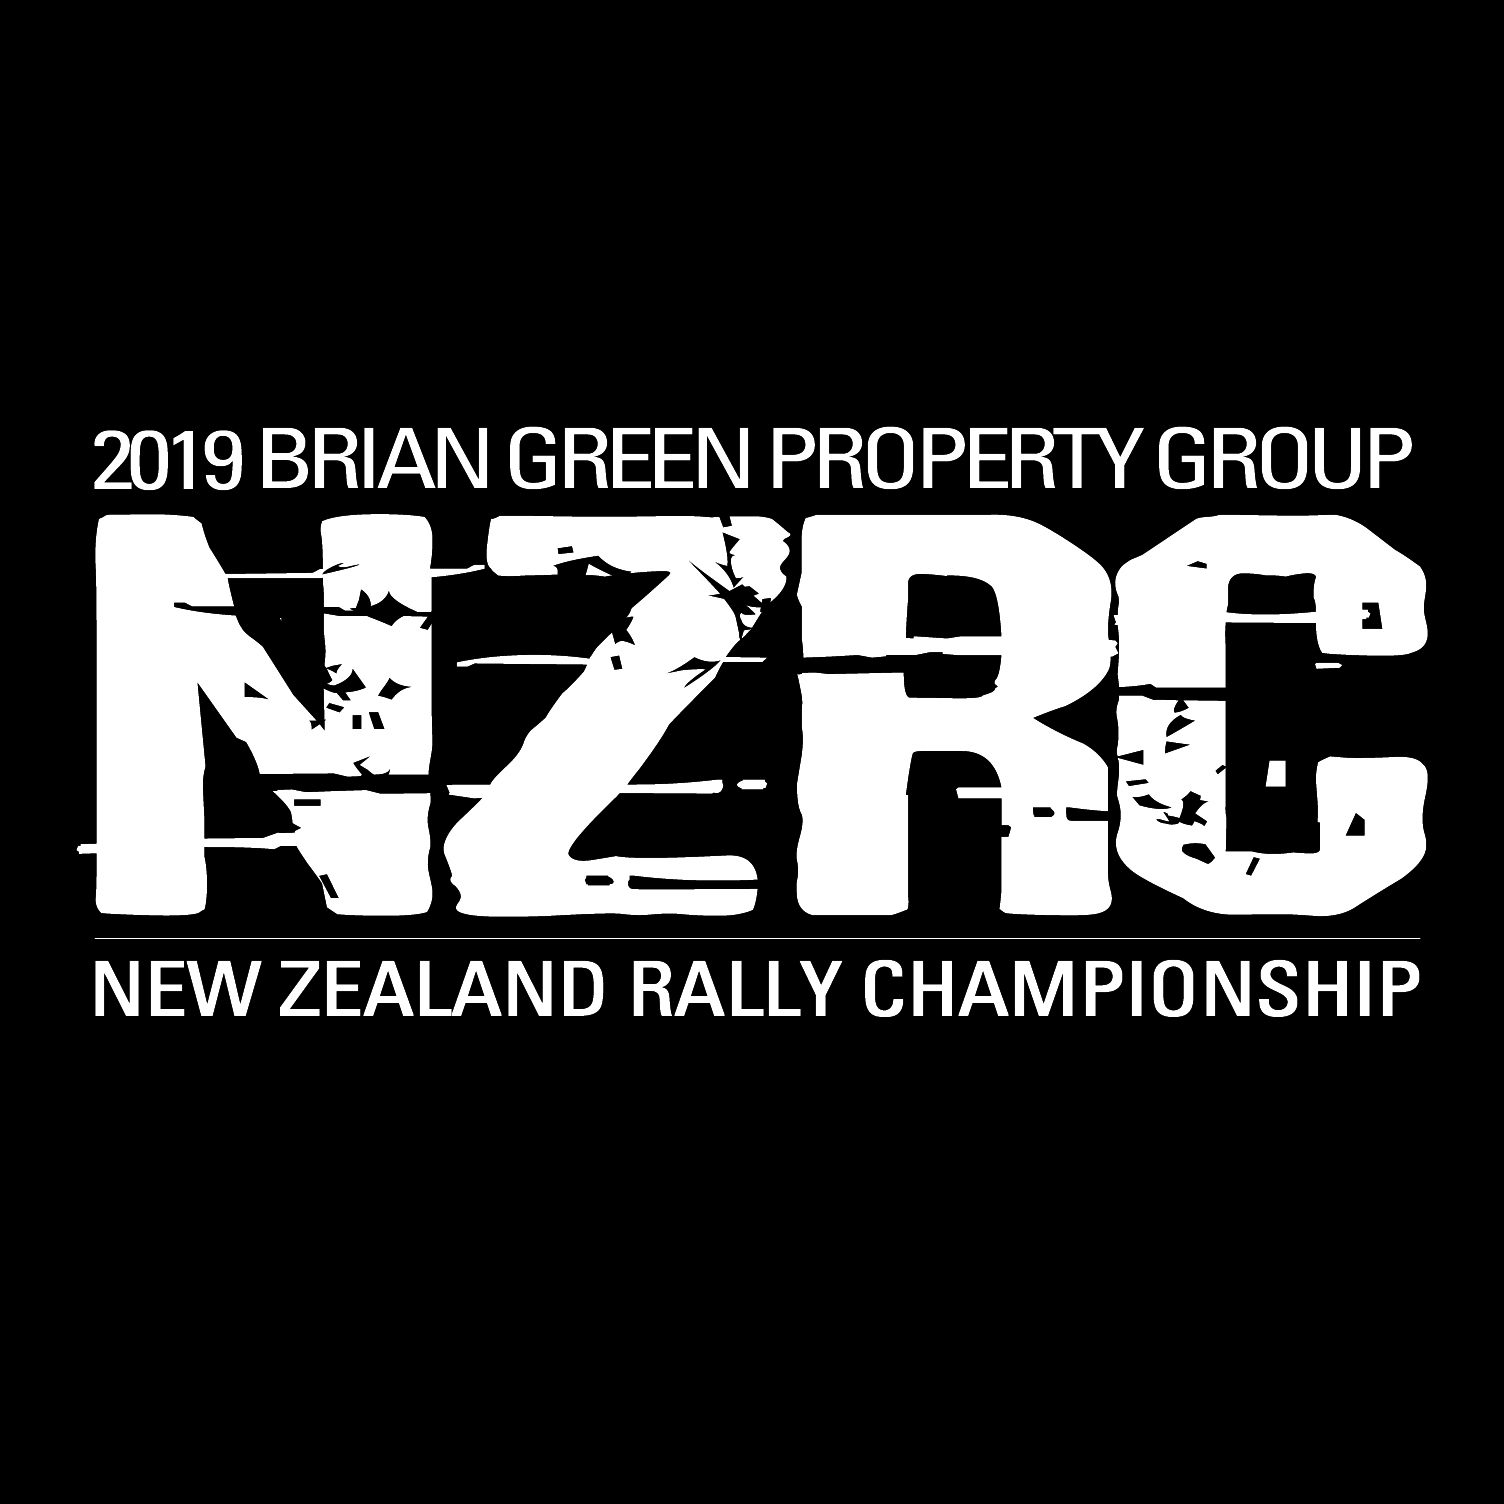 Paddon – my dominance is a combination of things | :: Brian Green Property Group New Zealand Rally Championship ::